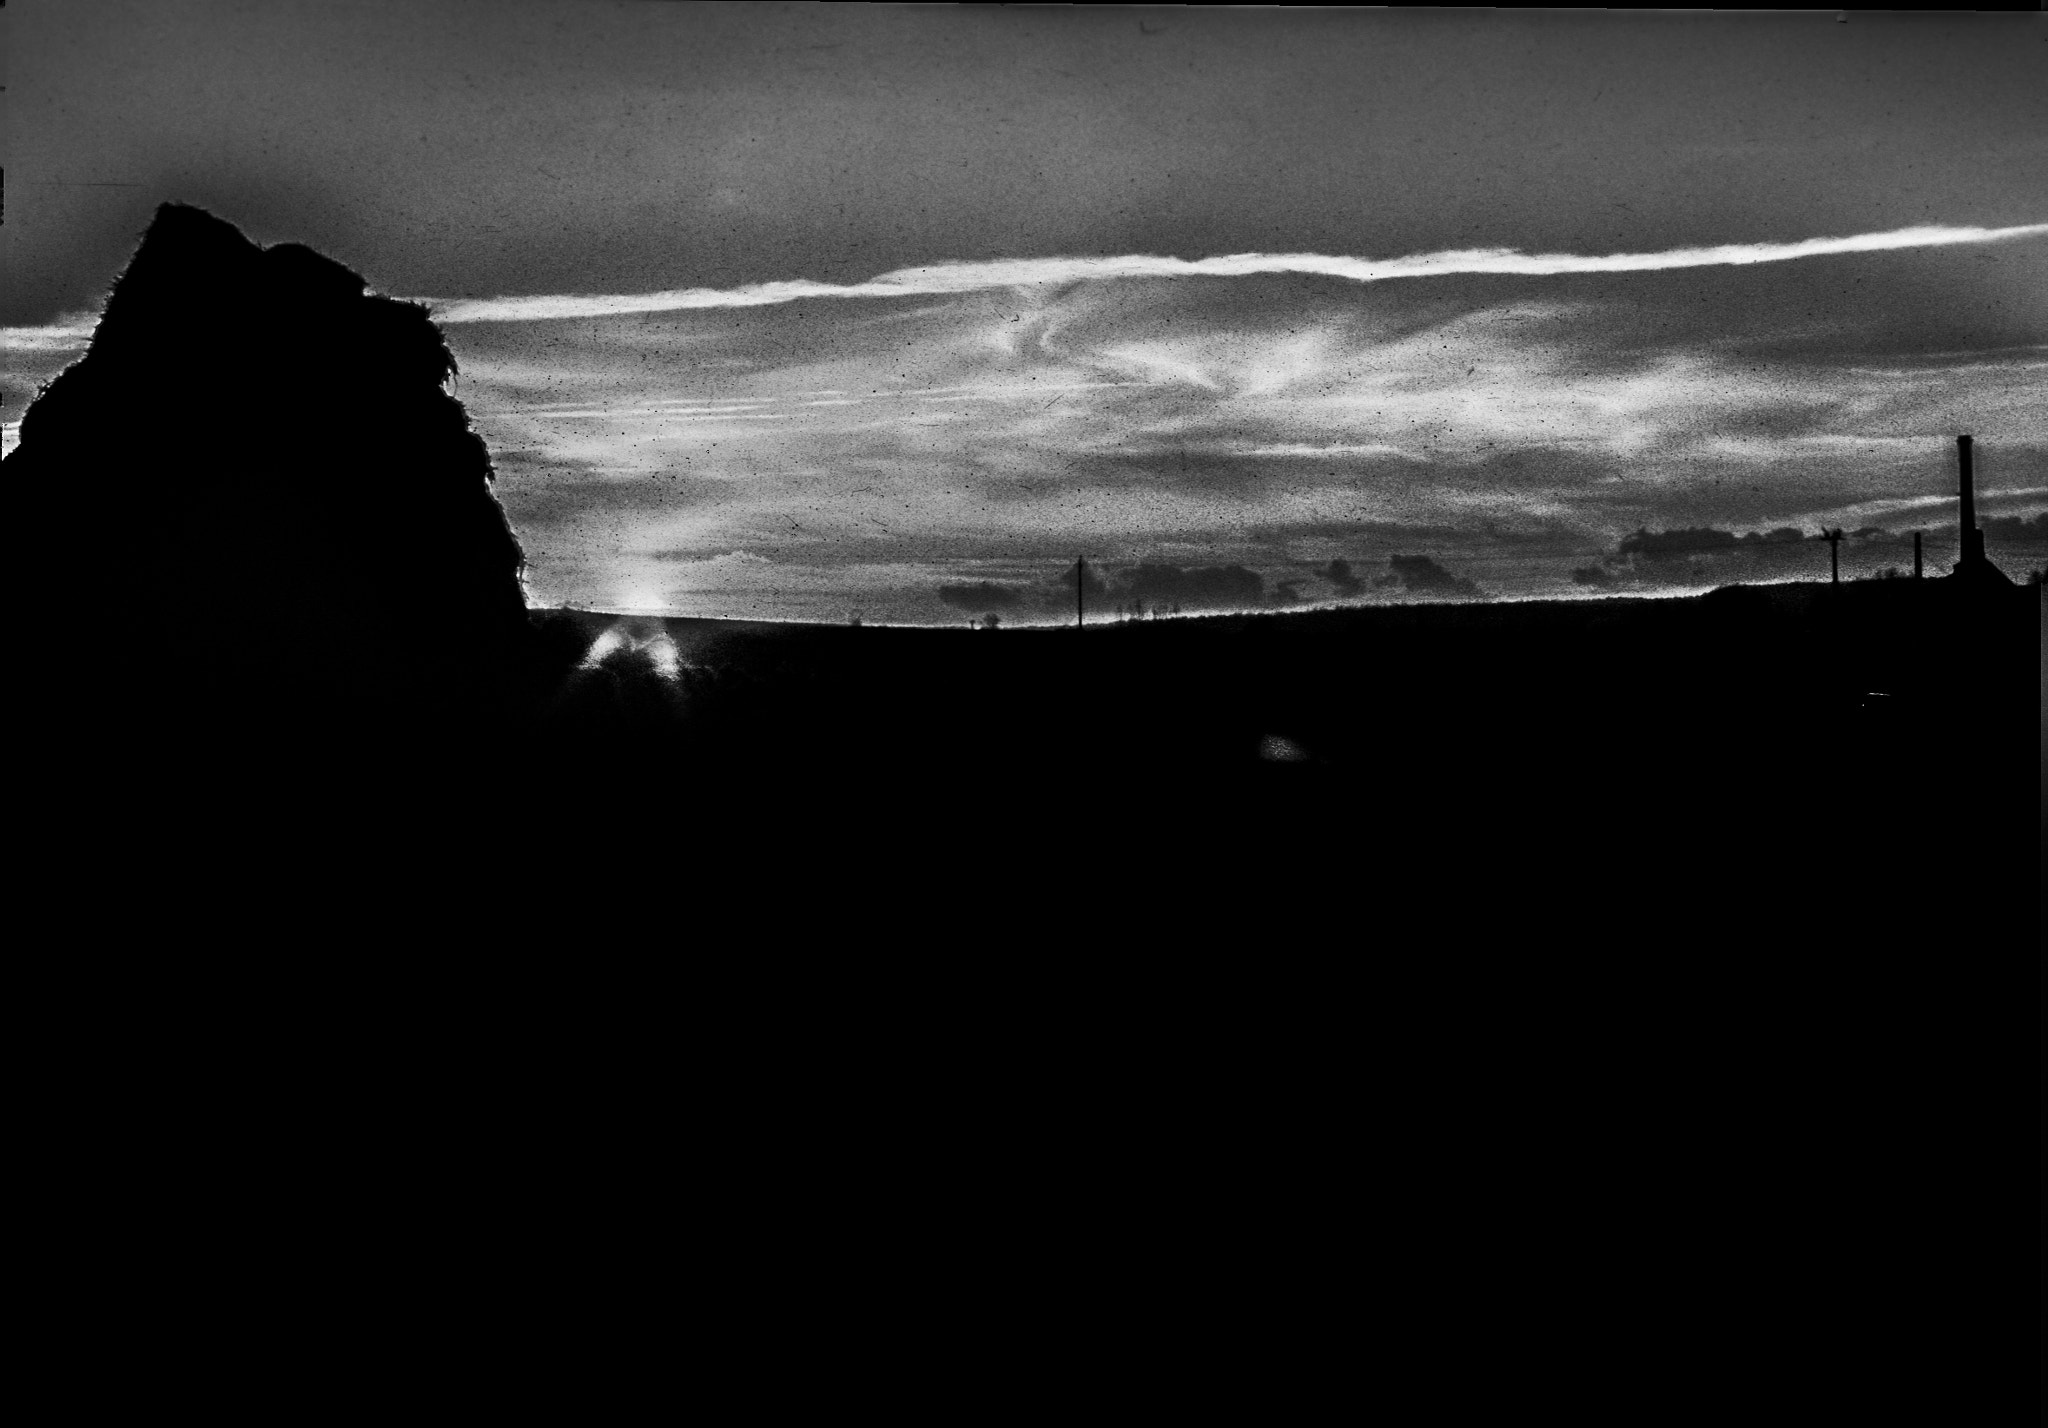 Photograph land of darkness by Jean-Claude Boucher on 500px